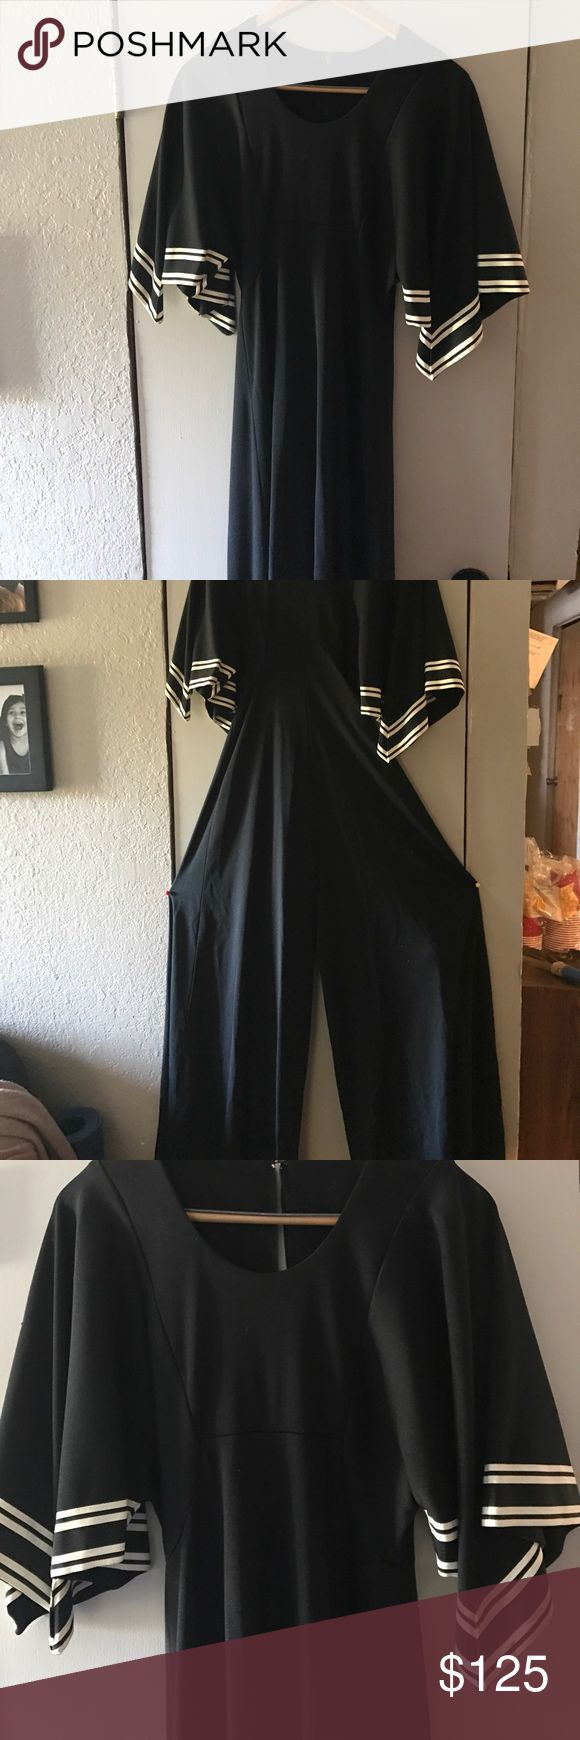 Vintage jump suit. Hello, selling a vintage jump suit that has no maker name or size. It looks to be homemade and size 6/5. The bottom will need to hem. I see a very small hole on the left leg in the middle. Super cool jump suit. I ship USPS priority mail.  I also sale on eBay and my user name is ndnjohn7172 with 100% feedback. If you have any Q's please send me a PM. Thanks, John S. Vintage Dresses High Low